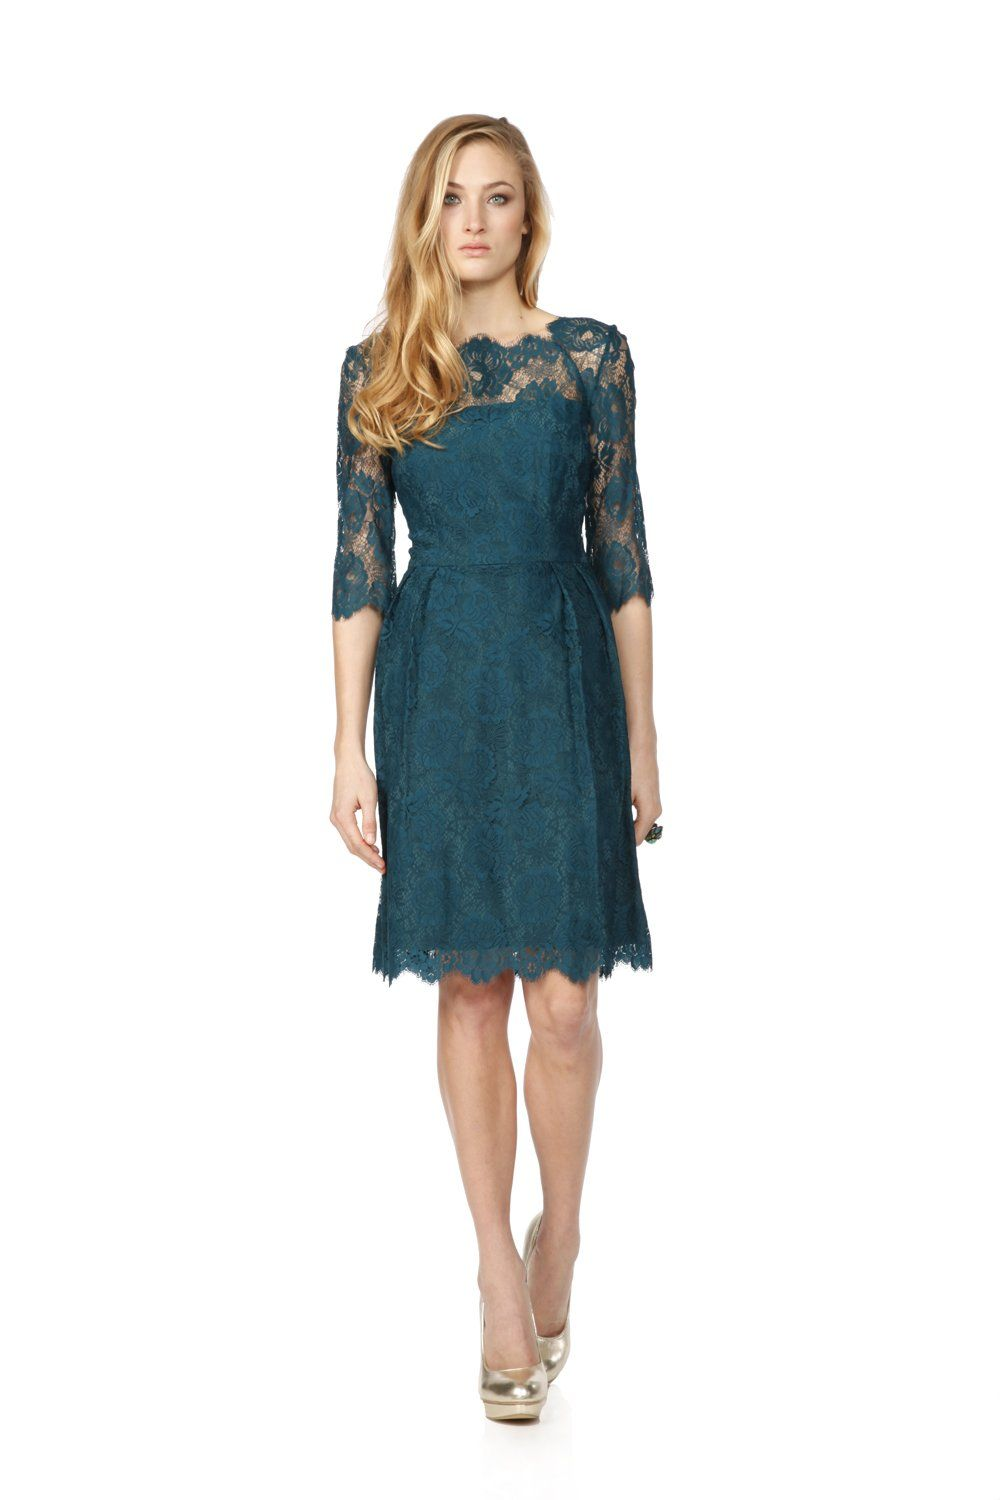 Mother wear for wedding  Sandie HoppGreen celia dress This would be amazing as a mother of